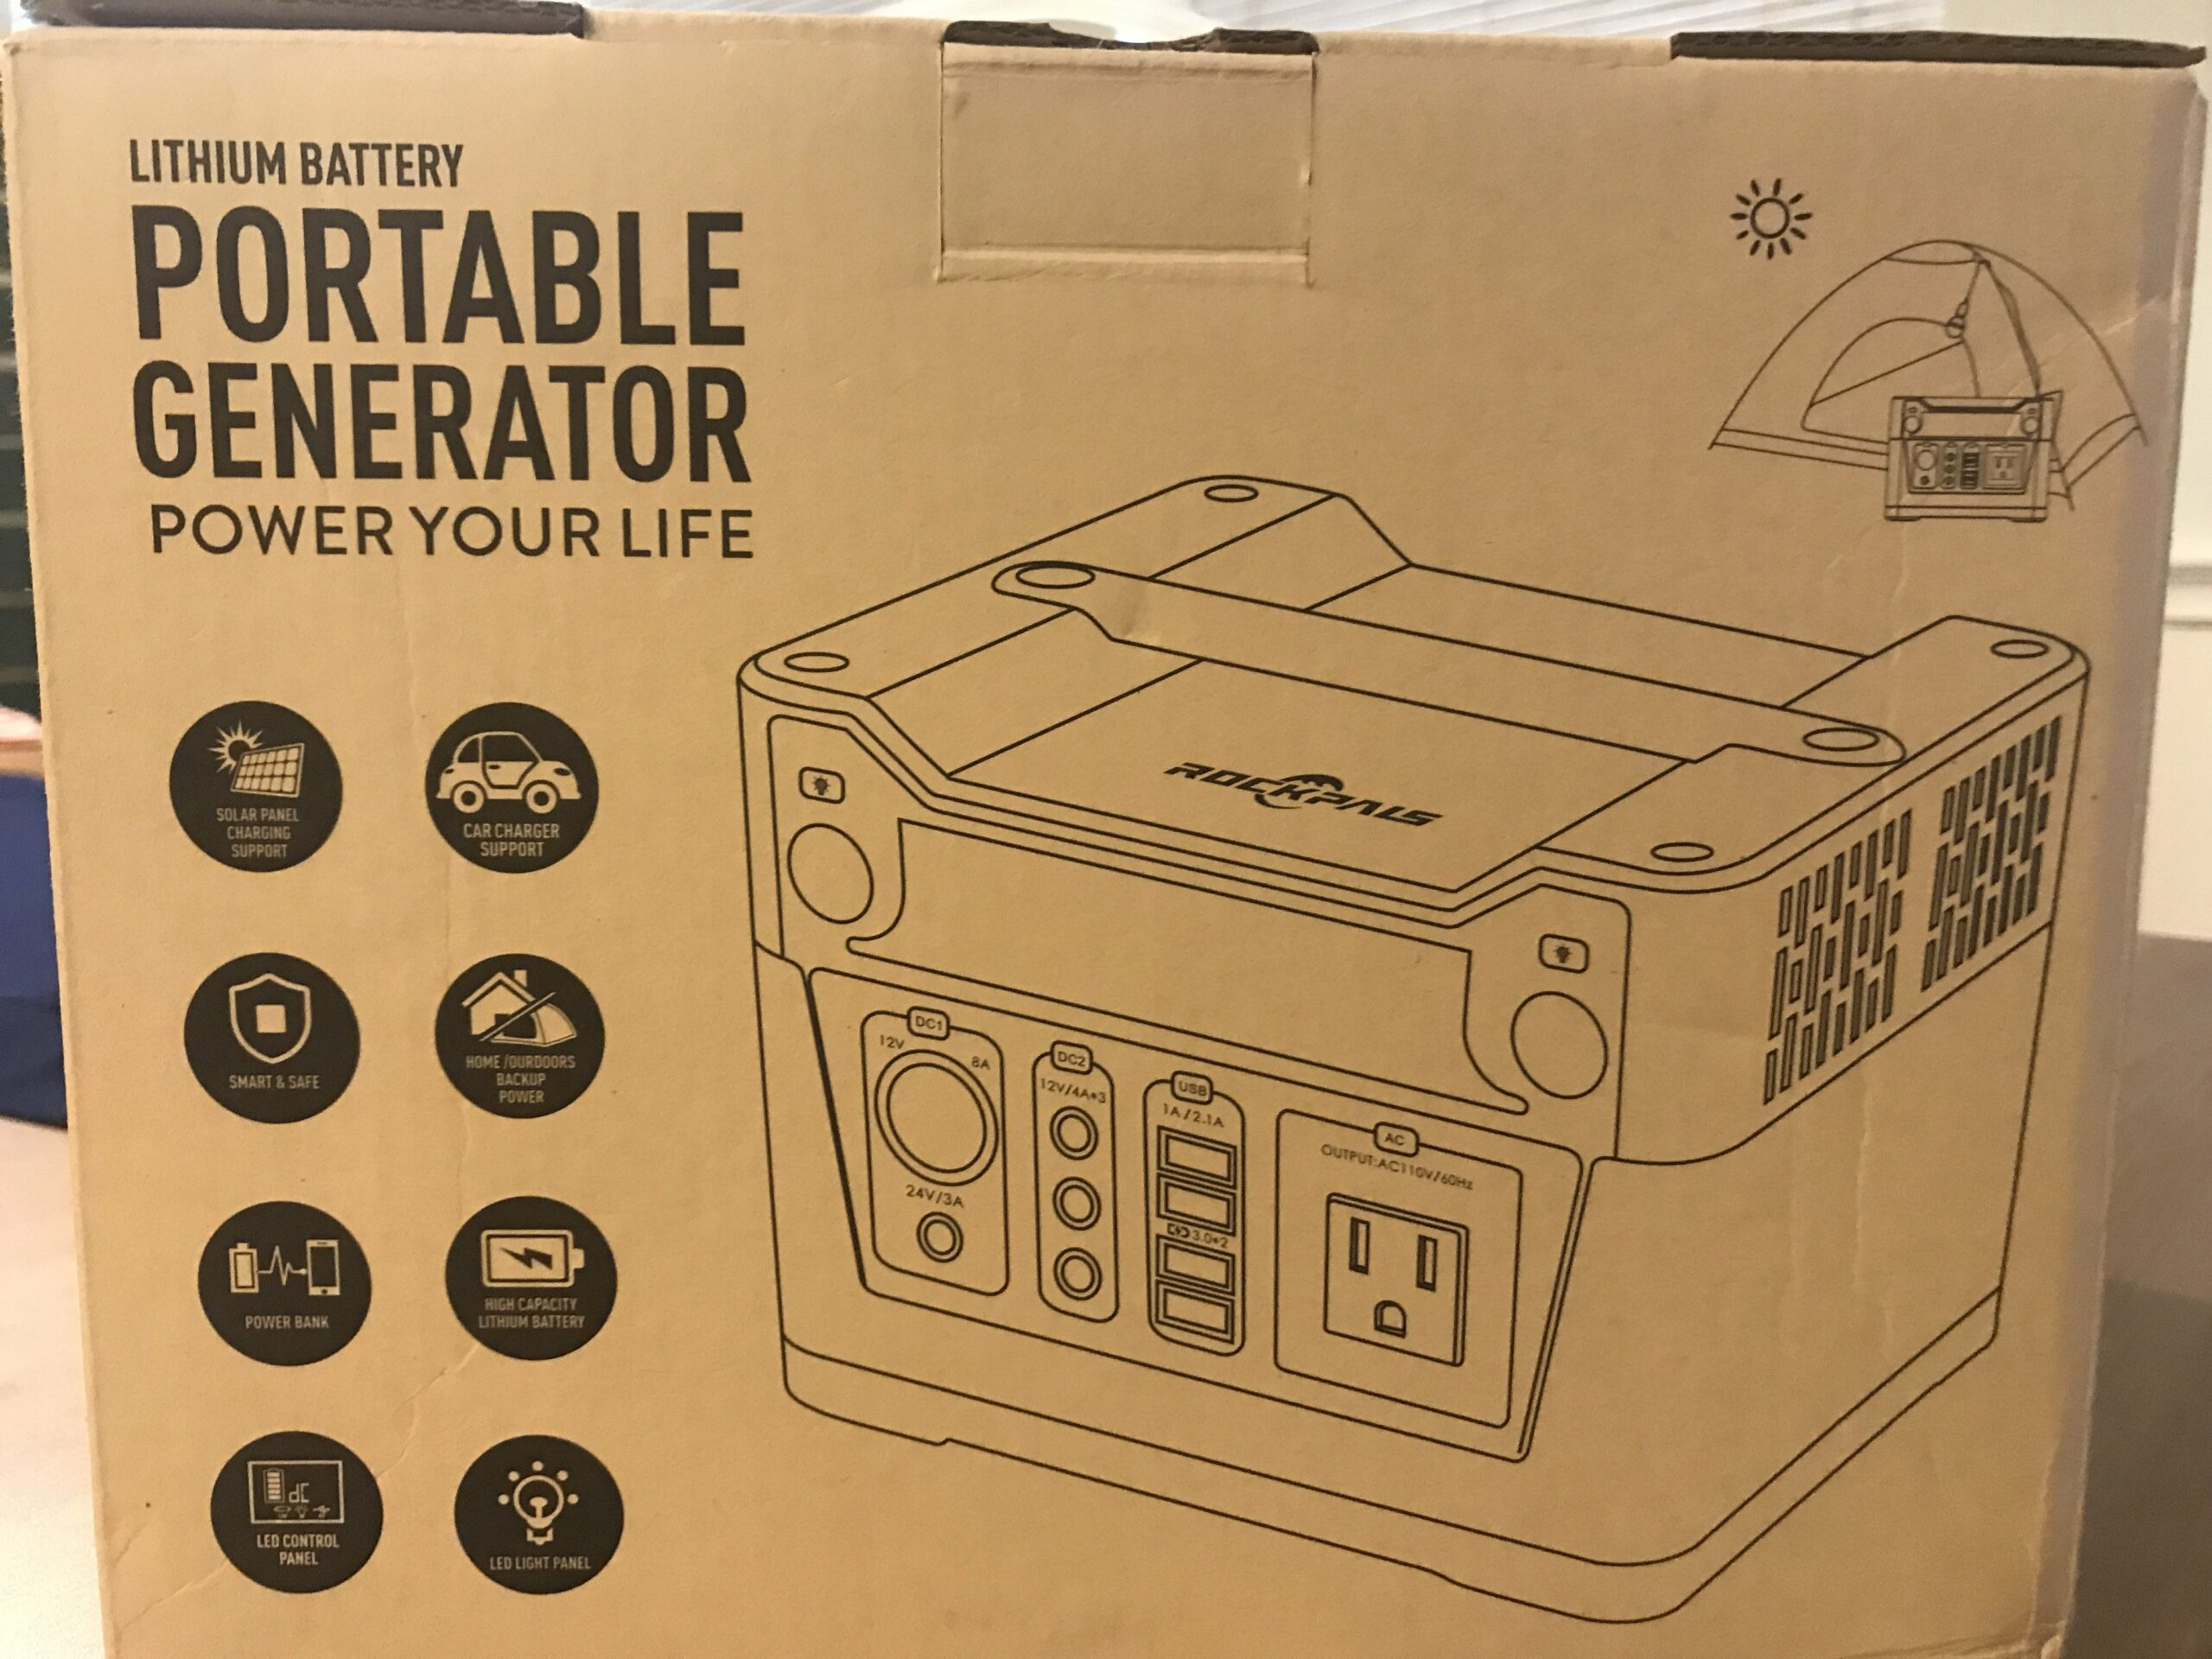 Rockpals Lithium Battery Portable Generator unboxing